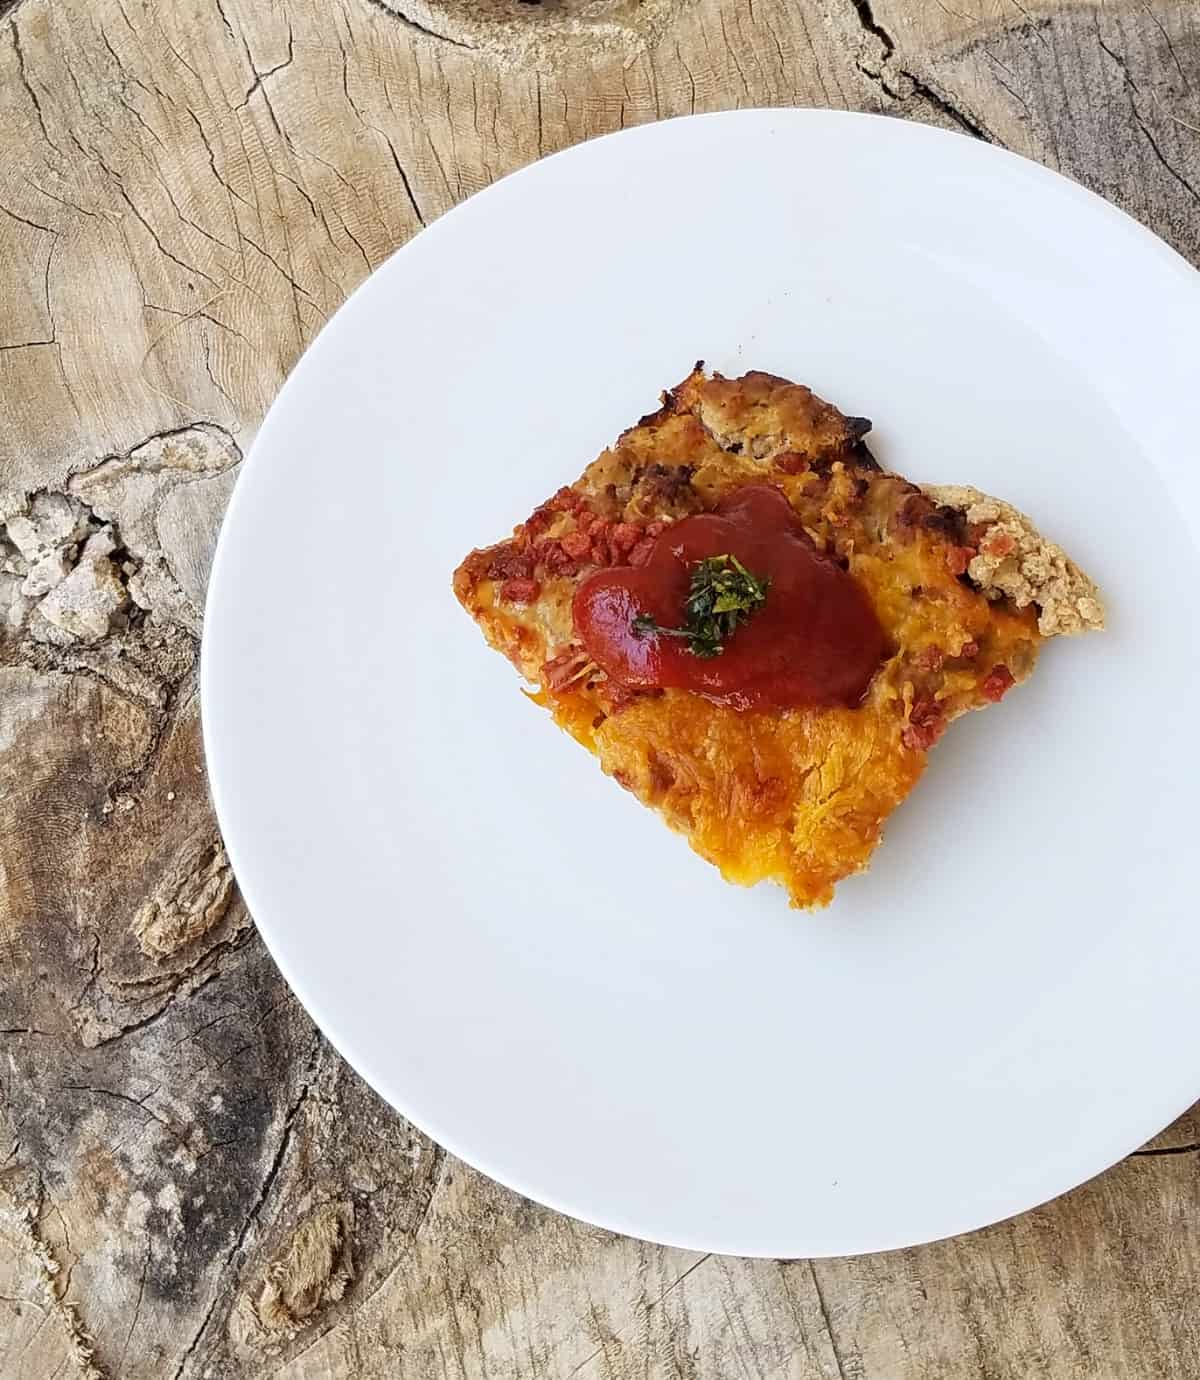 Piece of baked cheeseburger casserole topped with ketchup on white dinner plate.